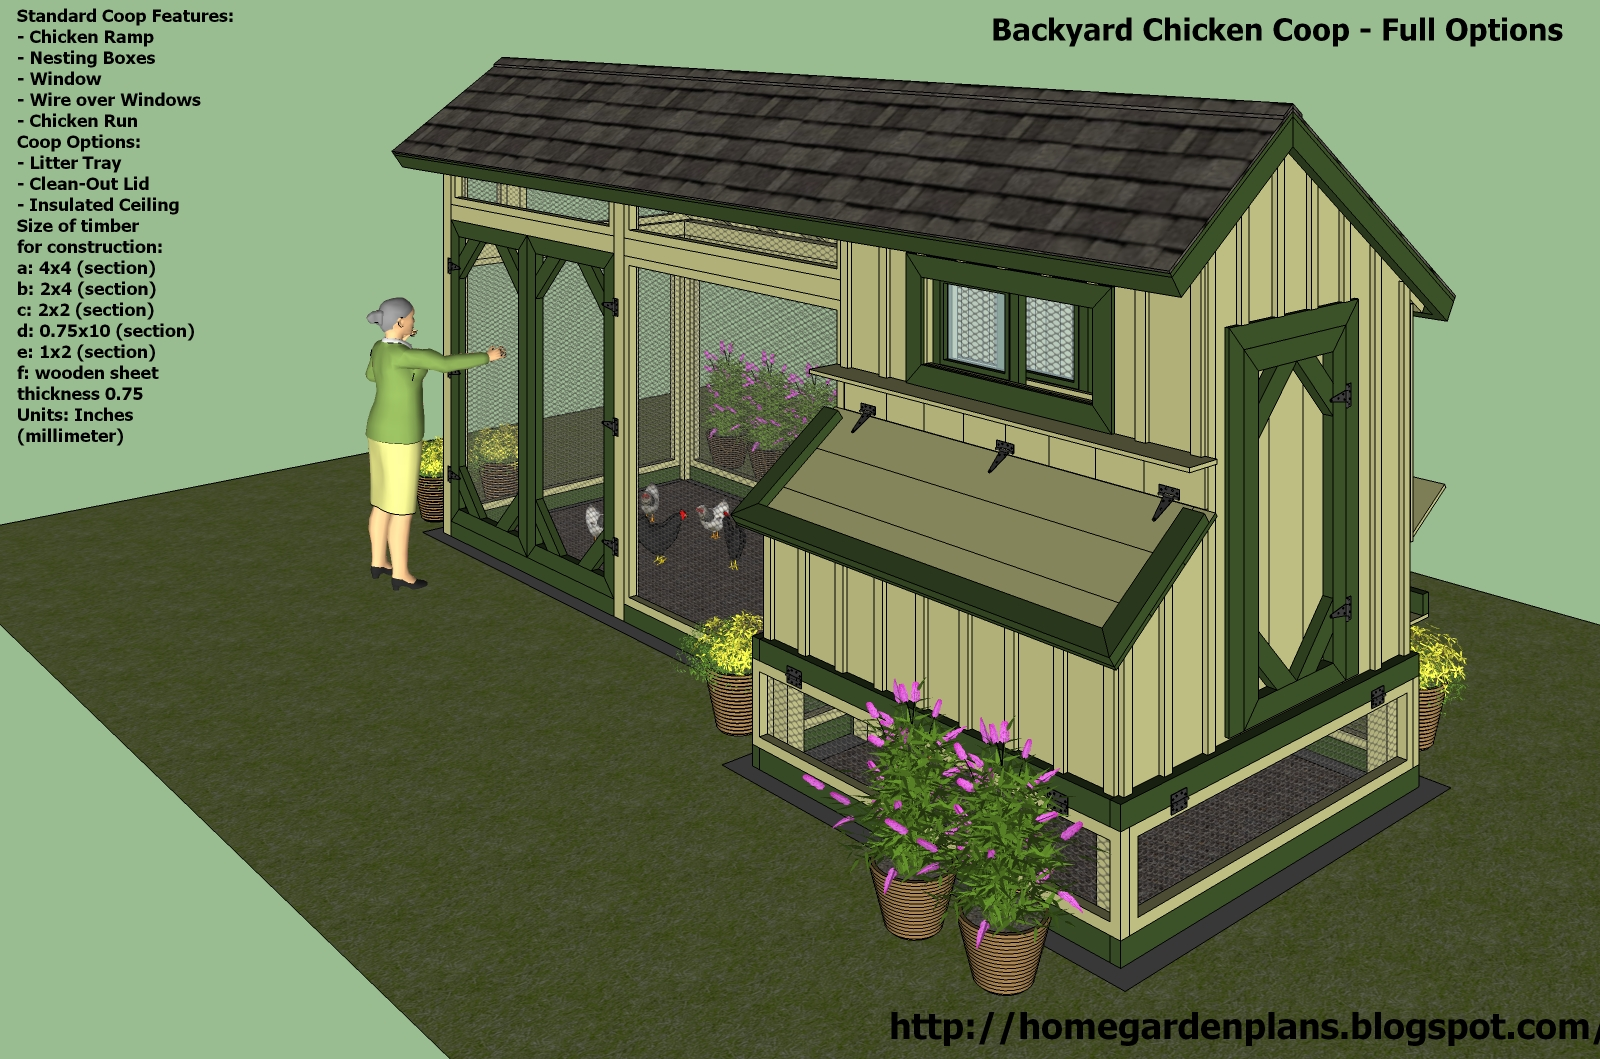 Download plans for a chicken run free venpa for Chicken coop blueprints designs plans